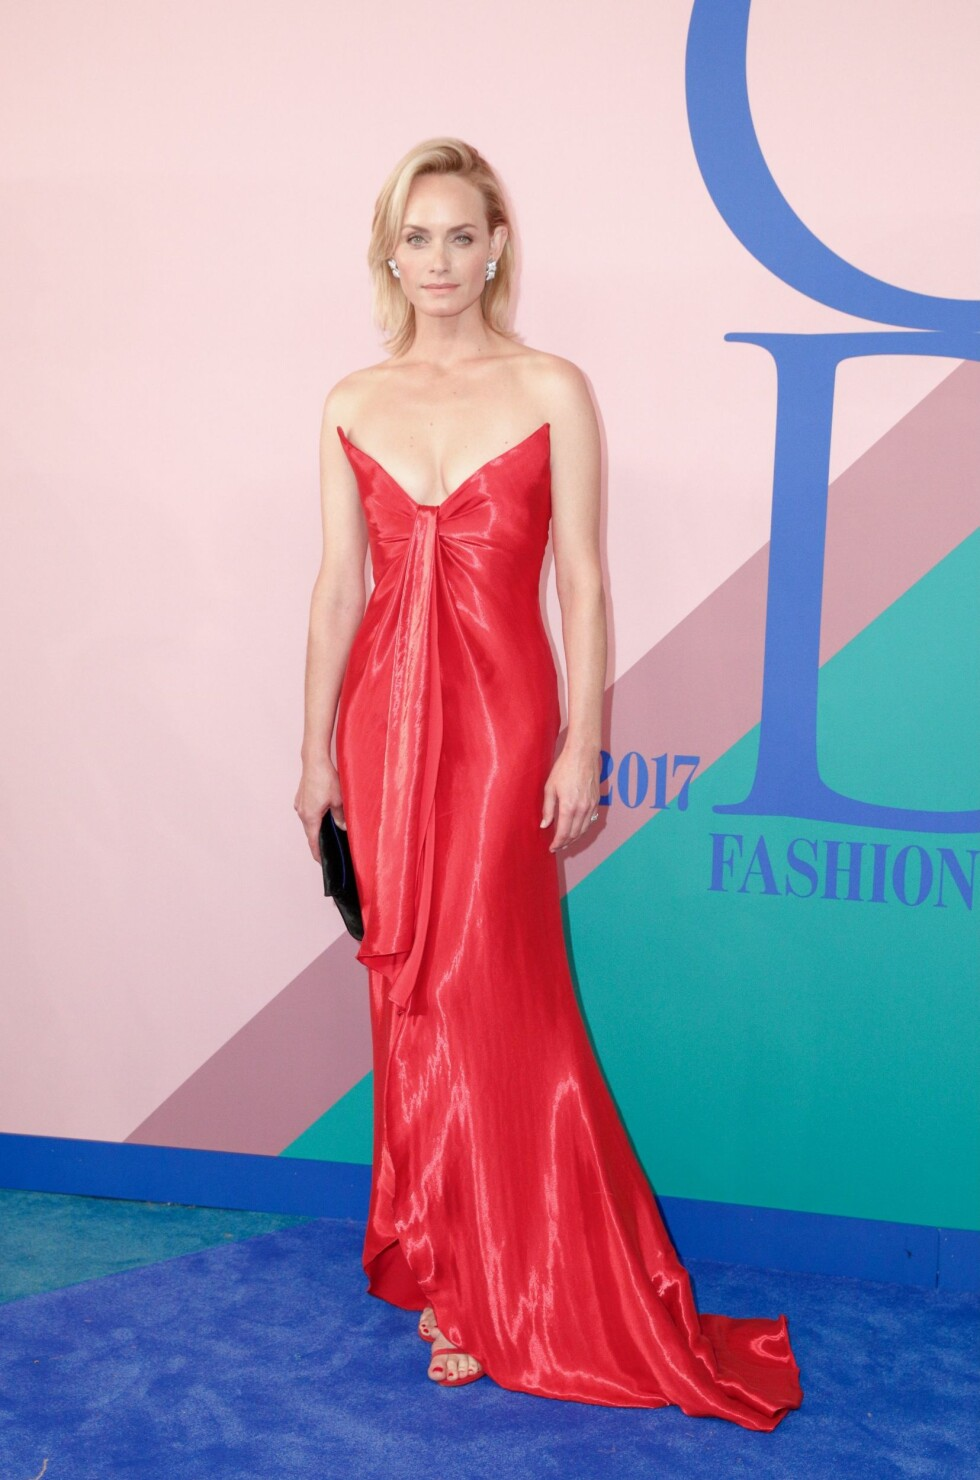 CFDA FASHION AWARDS: Amber Valetta Foto: Shutterstock